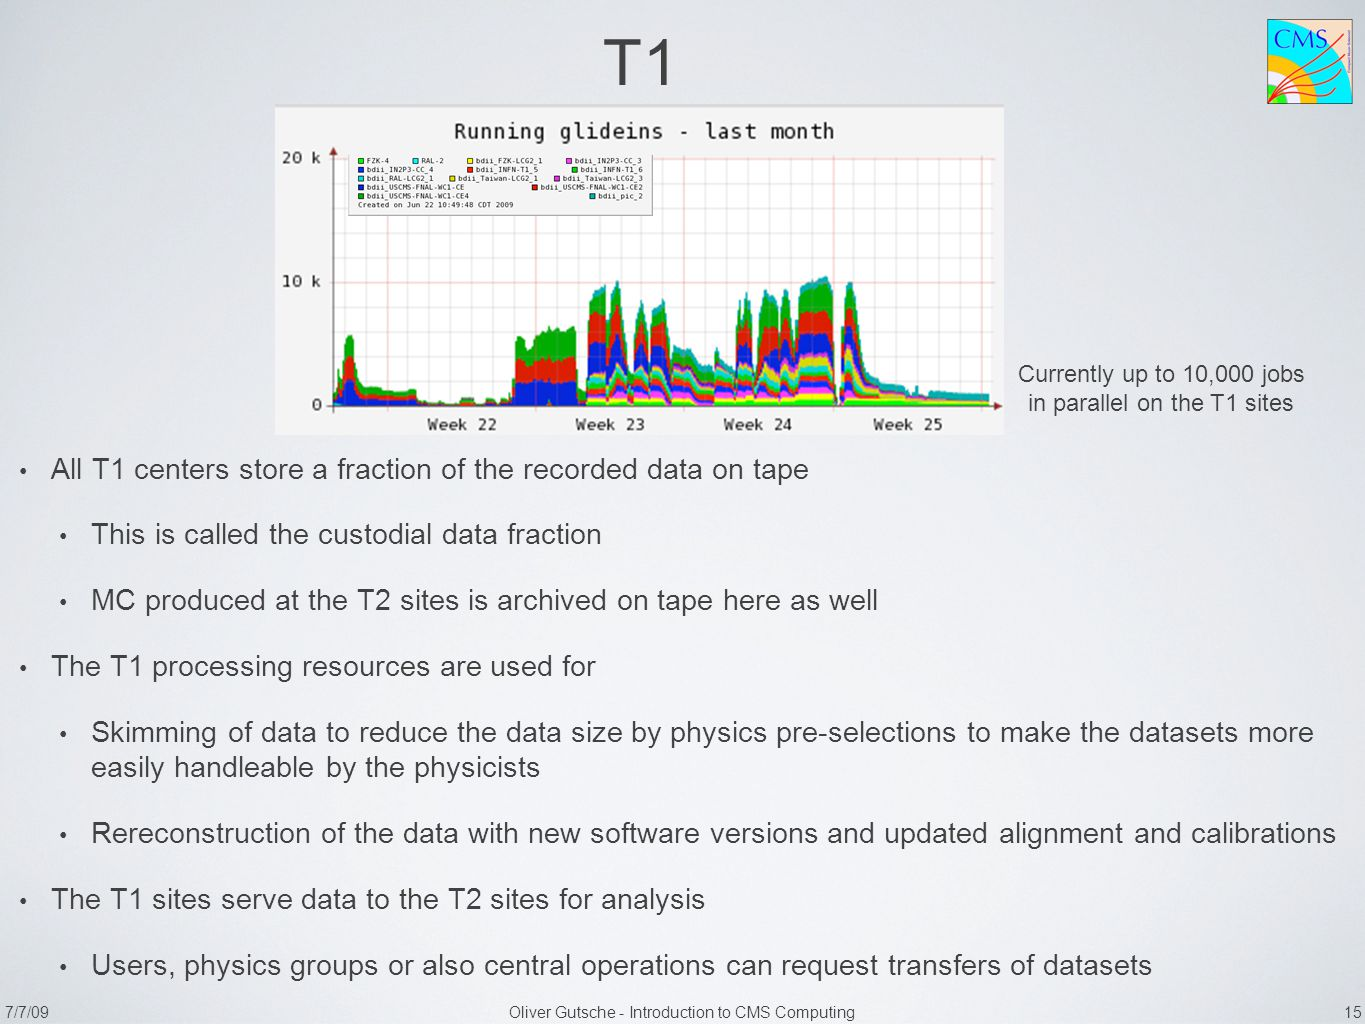 7/7/09Oliver Gutsche - Introduction to CMS Computing 15 T1 All T1 centers store a fraction of the recorded data on tape This is called the custodial data fraction MC produced at the T2 sites is archived on tape here as well The T1 processing resources are used for Skimming of data to reduce the data size by physics pre-selections to make the datasets more easily handleable by the physicists Rereconstruction of the data with new software versions and updated alignment and calibrations The T1 sites serve data to the T2 sites for analysis Users, physics groups or also central operations can request transfers of datasets Currently up to 10,000 jobs in parallel on the T1 sites